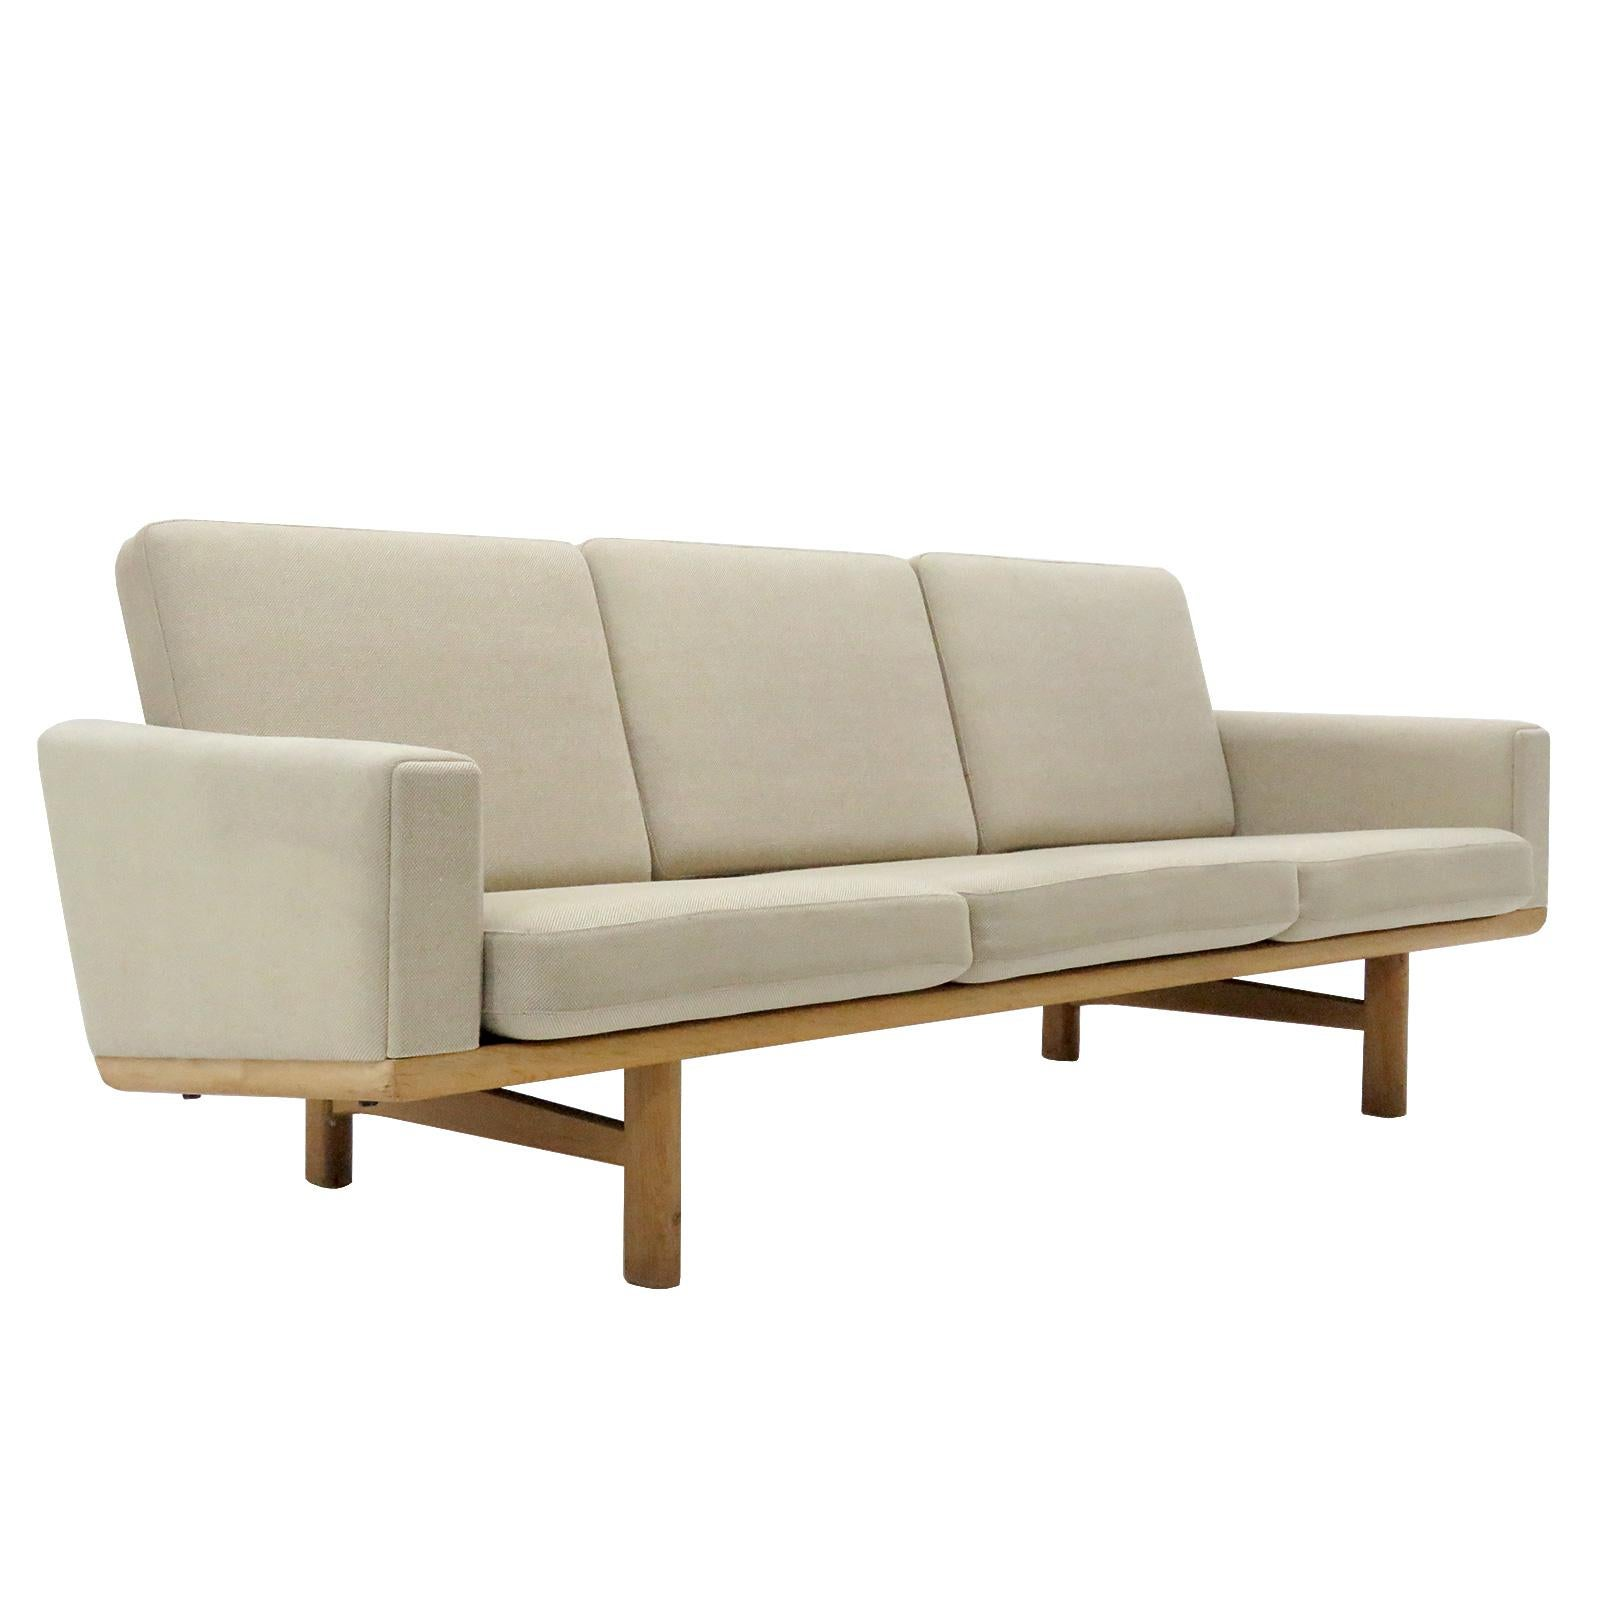 Hans Wegner Sofa Replica Hans J Wegner Sofas 90 For Sale At 1stdibs